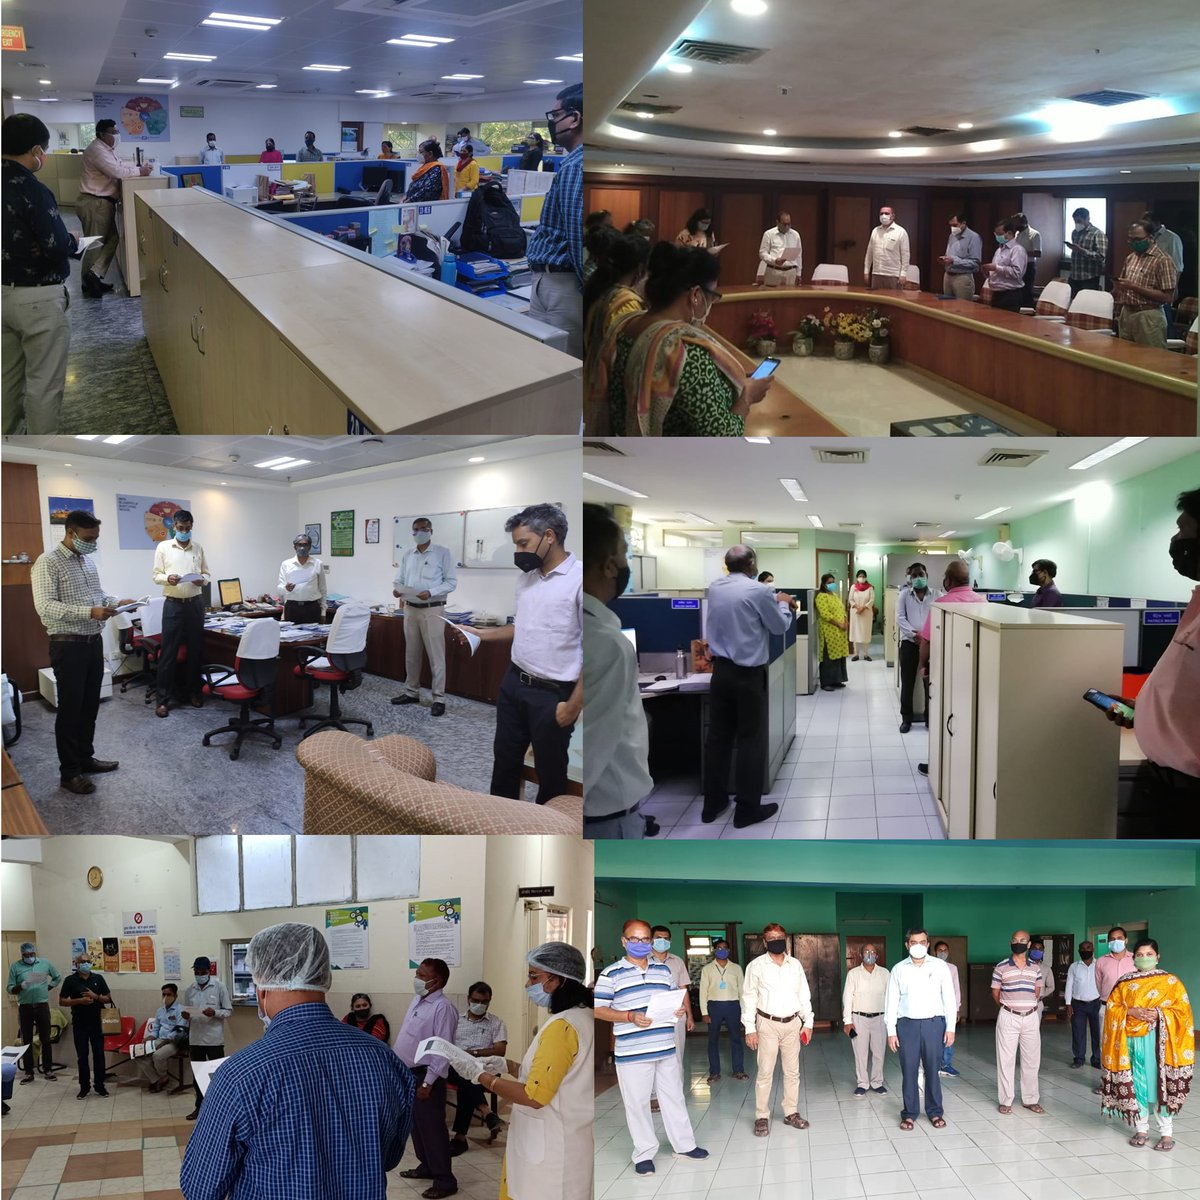 #BHEL's Delhi/NCR based employees reiterating their commitment to the war against Covid-19 by way of a Pledge as part of 'Jan Andolan for Covid-19 Appropriate Behaviour' campaign @heindustry @PrakashJavdekar @arjunrammeghwal @PIB_India #JanAndolan #UnitetofightCorona https://t.co/jhaSitFRXN